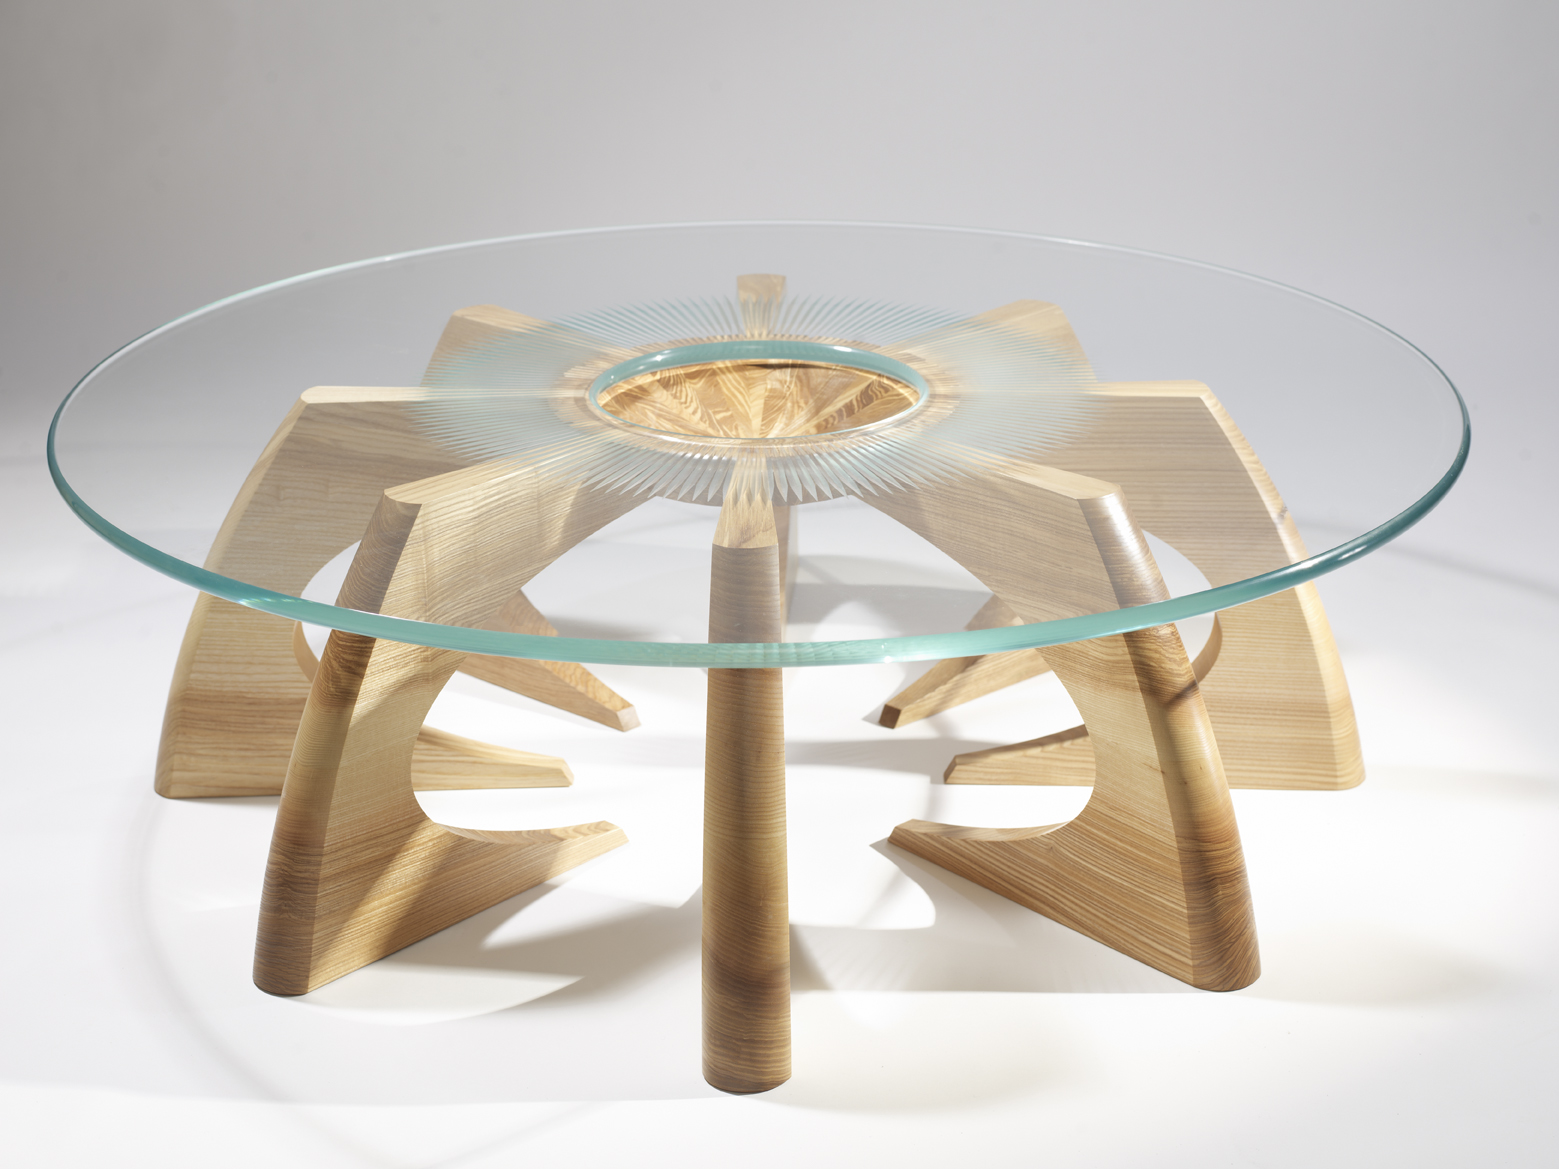 Interior house design a minimalist table but can produce for Interior design table